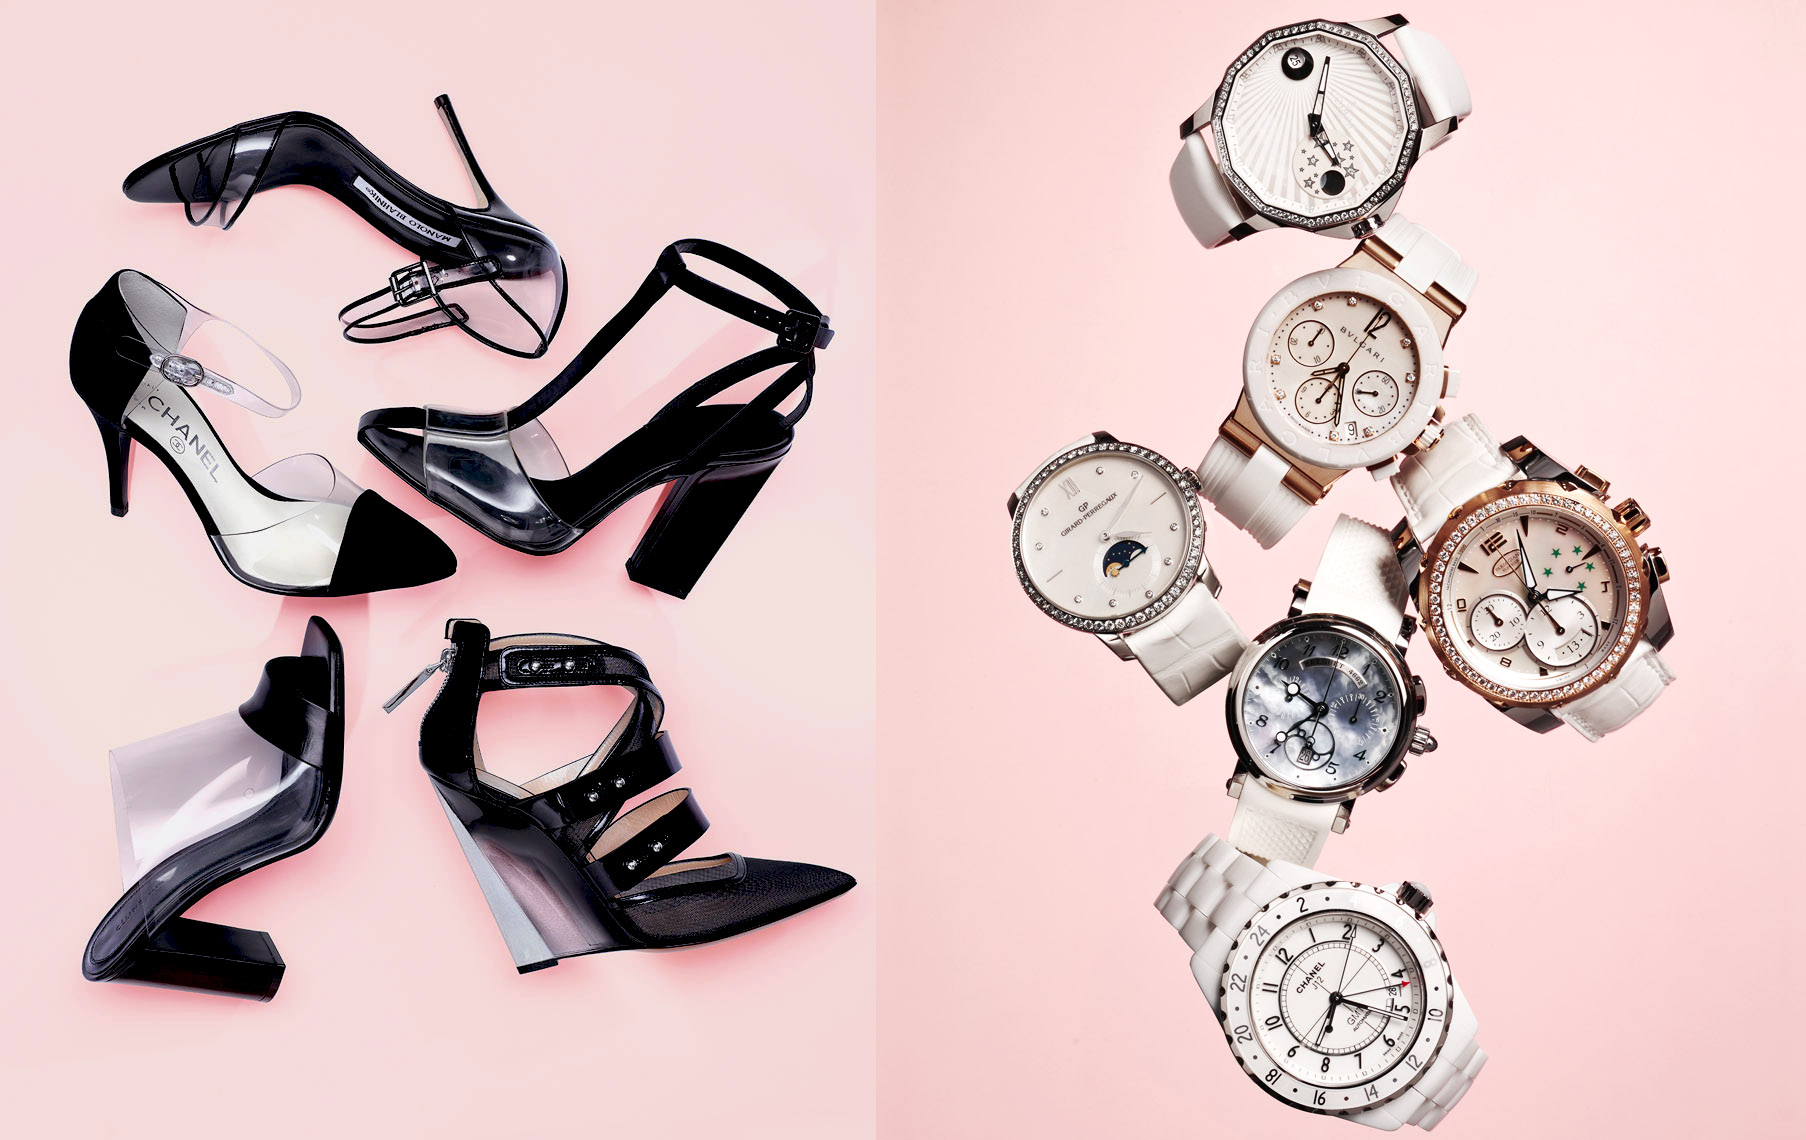 Accessories Still Life, Pumps and White Watches on Pink